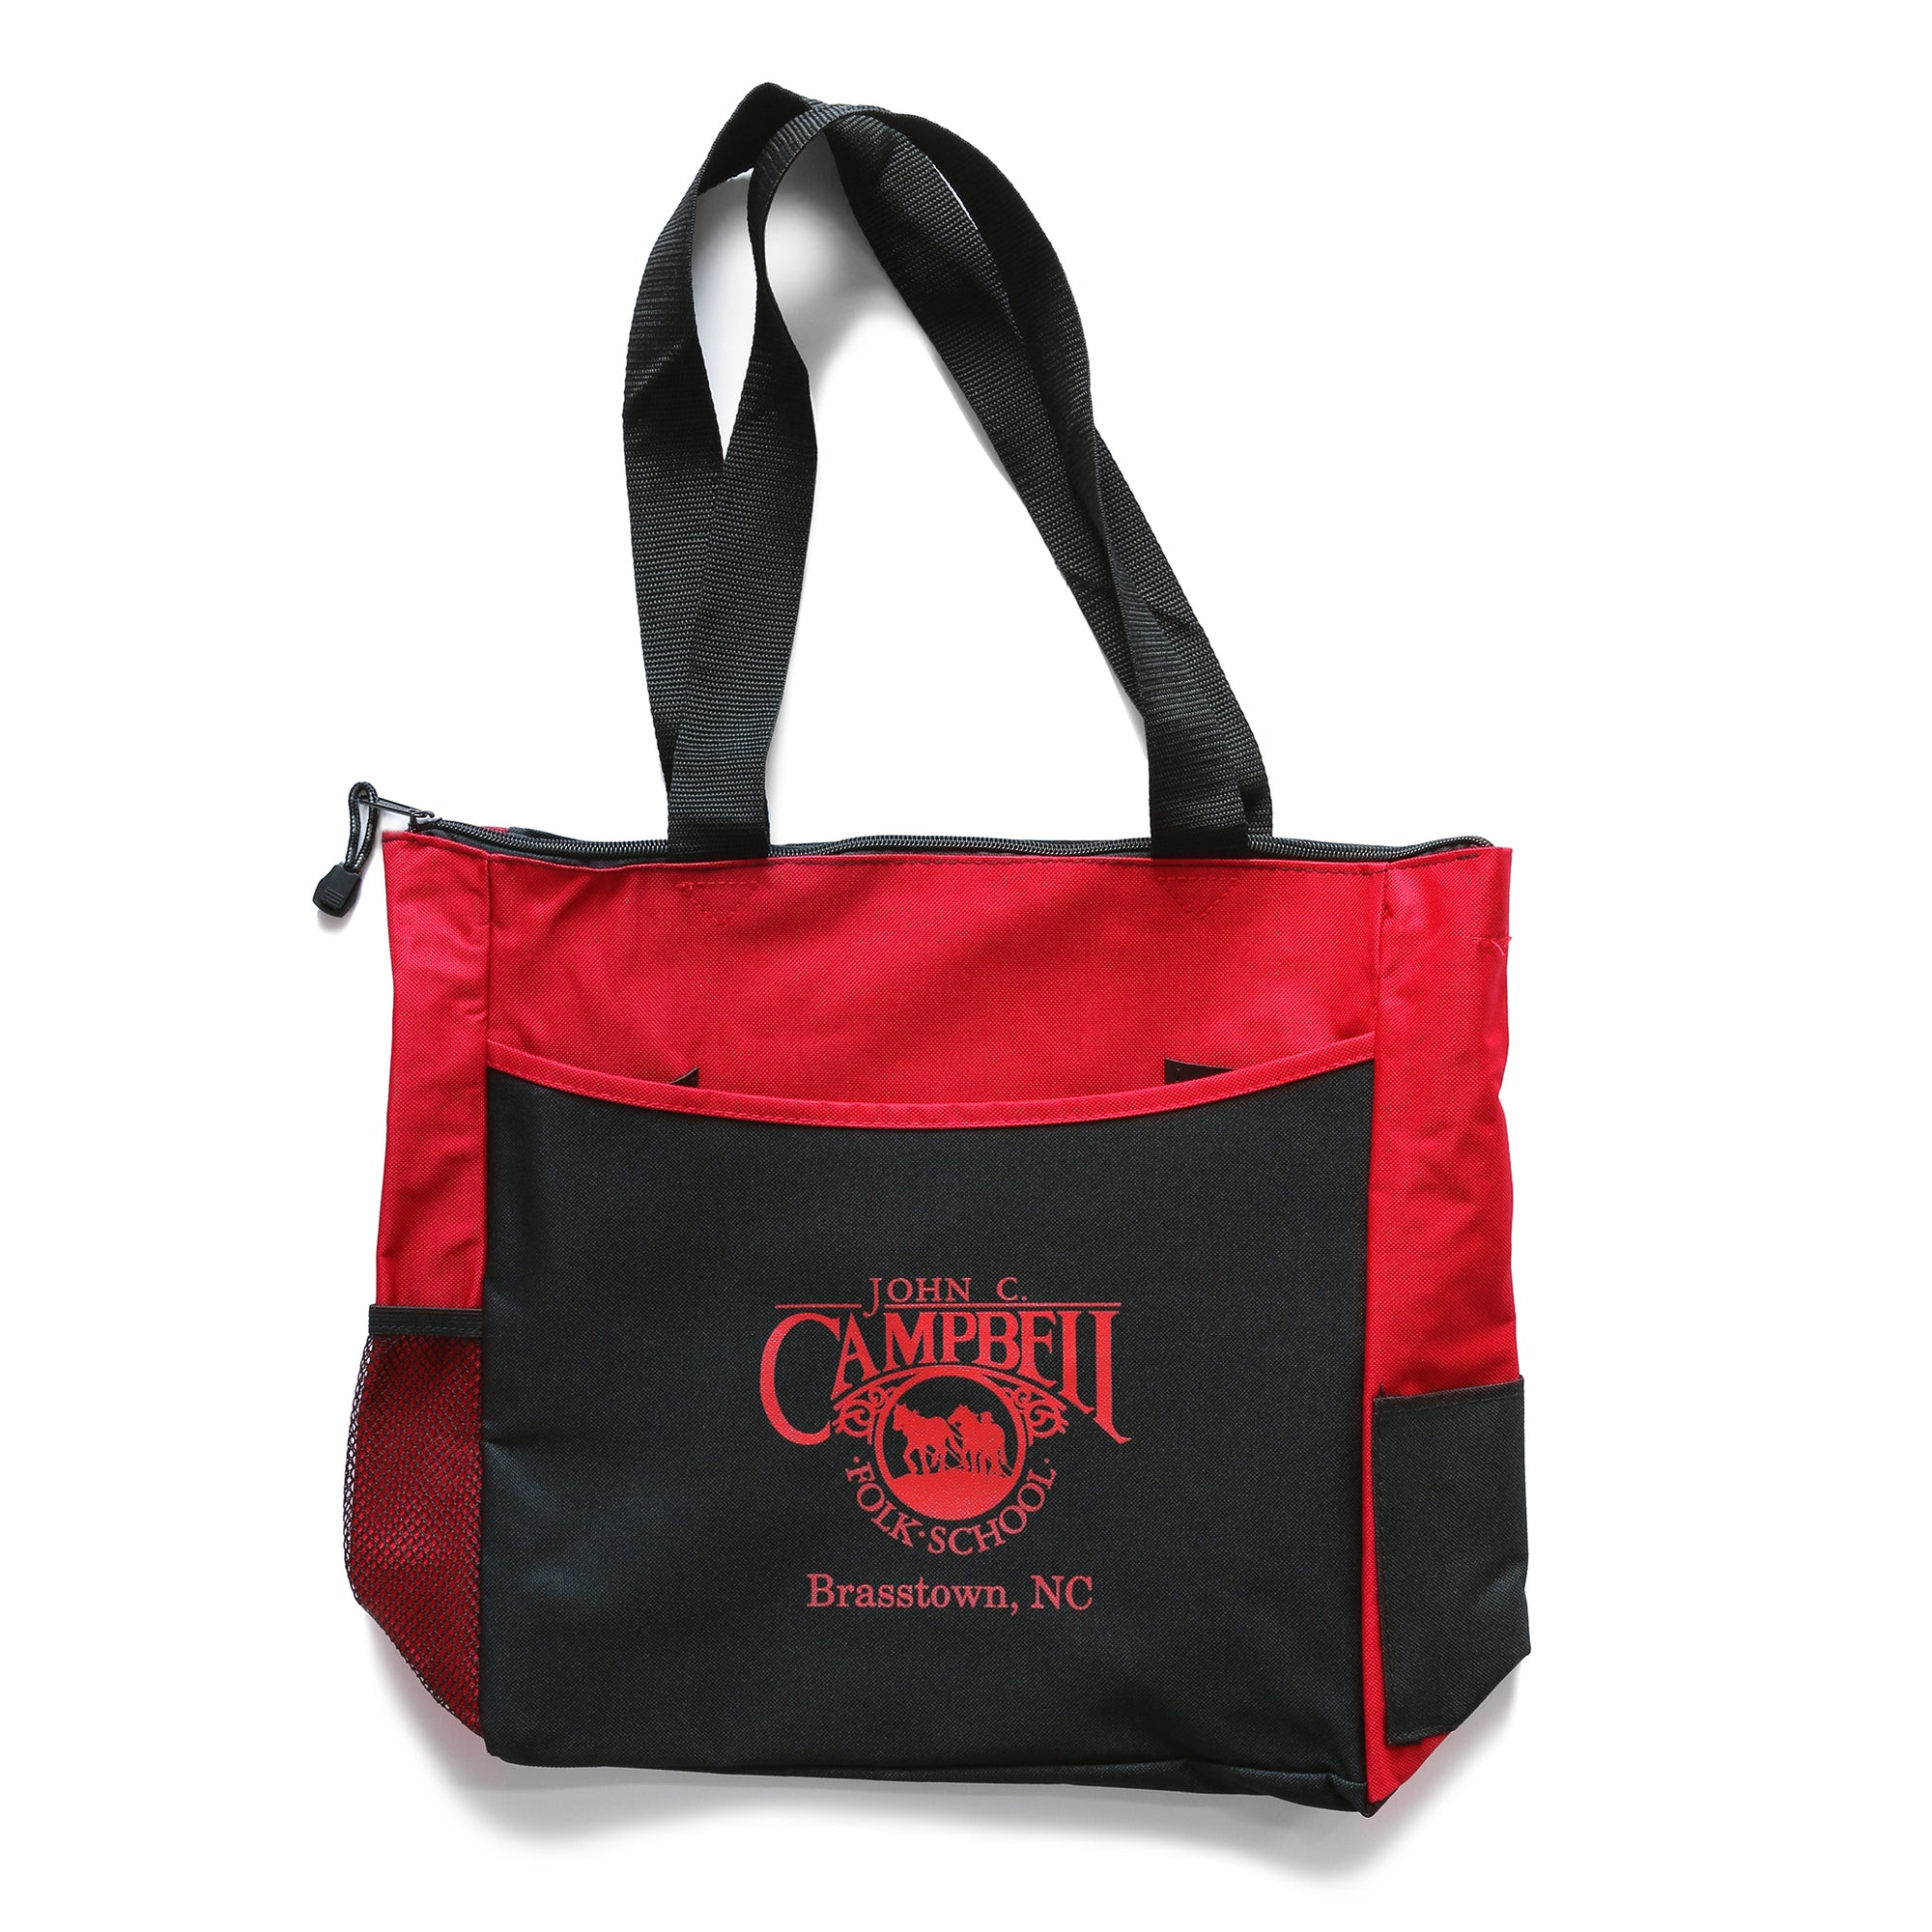 John C. Campbell Folk School Tote Bag